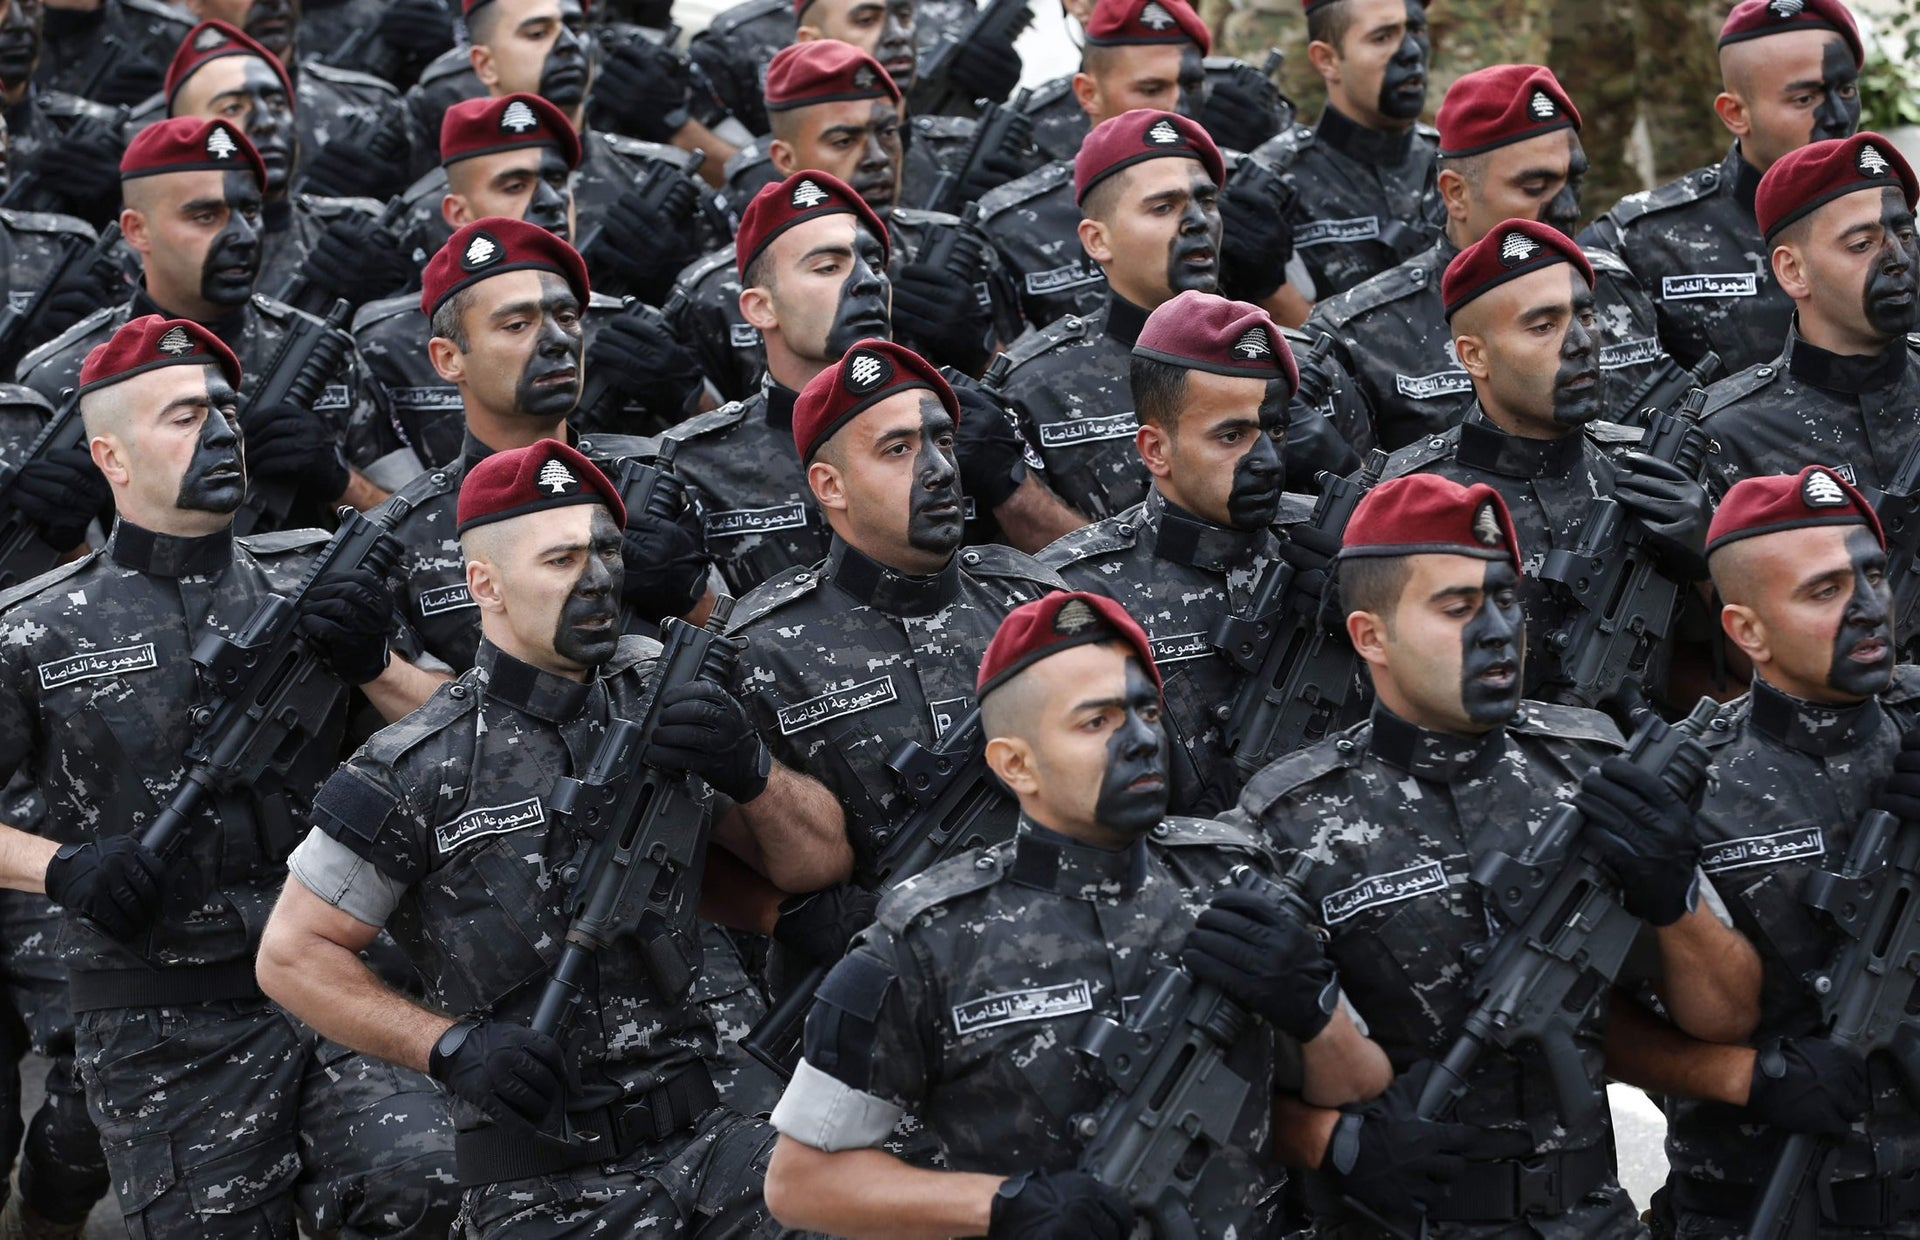 Members of the Lebanese security forces take part in a military parade for Independence Day celebrations marking 74 years since the end of France's mandate in Lebanon, on November 22, 2017 in Beirut.